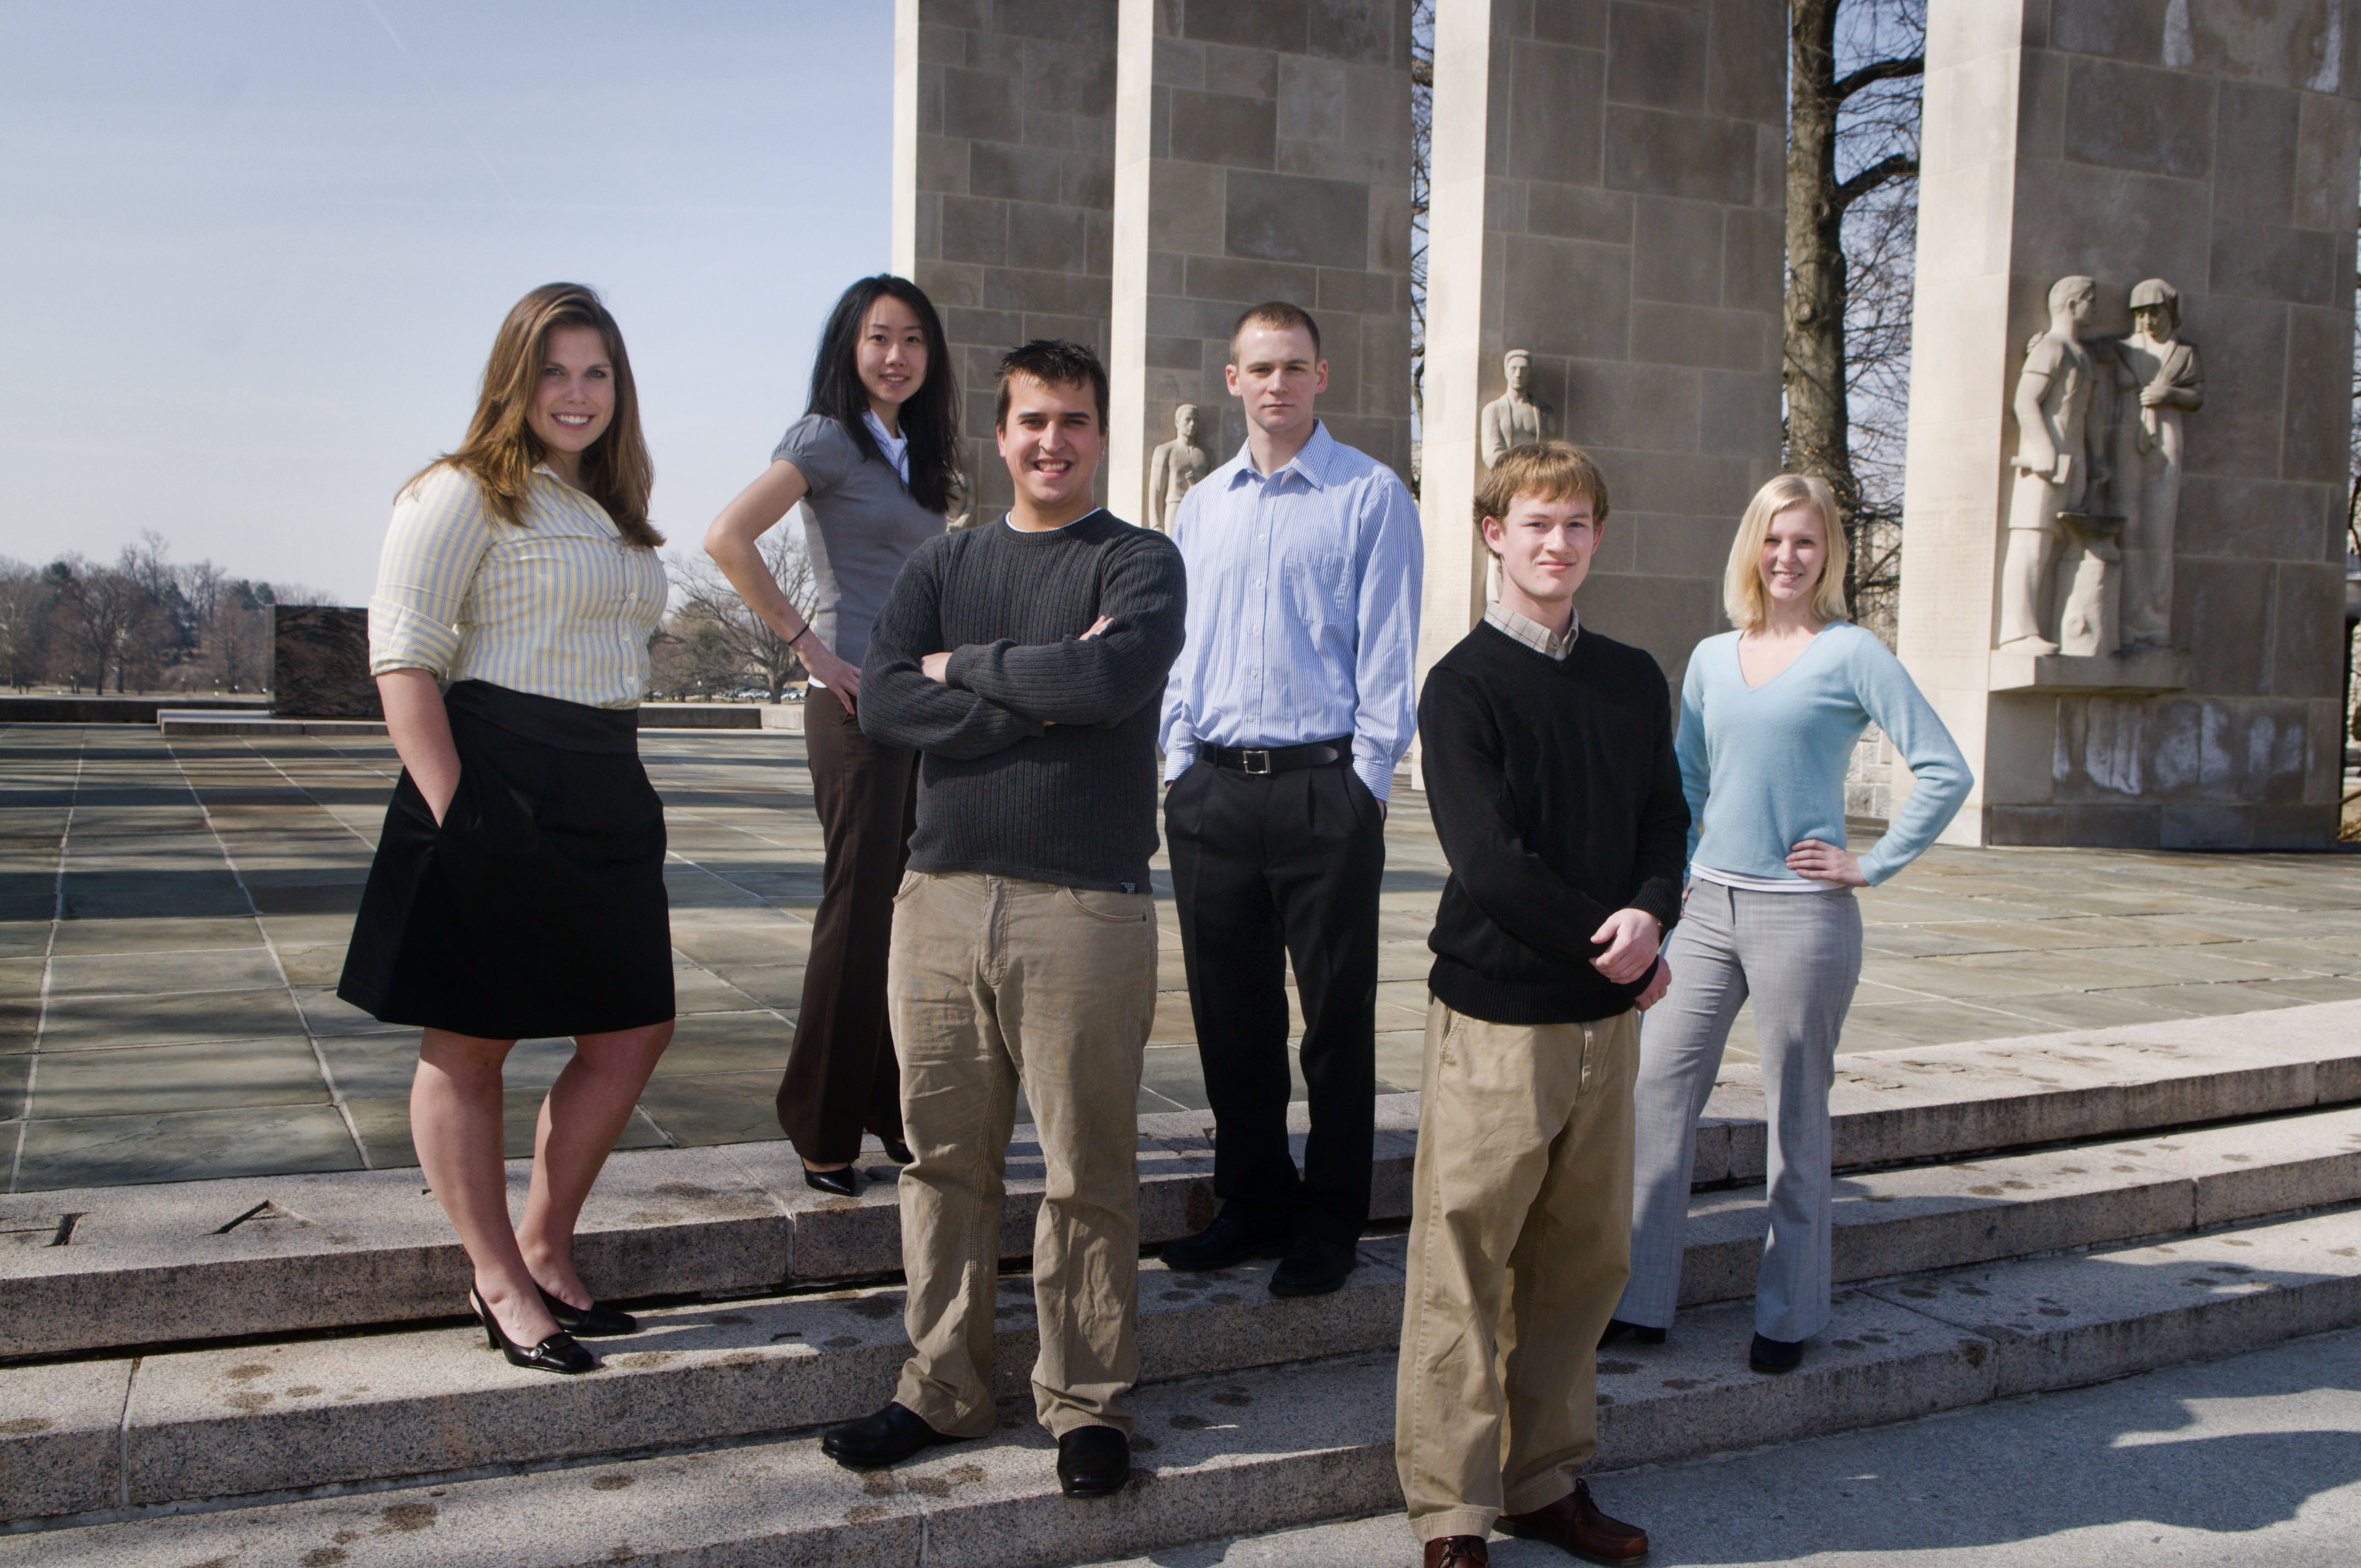 Virginia Tech students who will  present their research at the fourth annual Atlantic Coast Conference Meeting of the Minds undergraduate research conference in at North Carolina State University on April 2-4 are (left to right) Michelle Klassen, Sara Lu, Aaron Kroll, Jon Crain, Garrett Smith, and Sandra Hobsen.